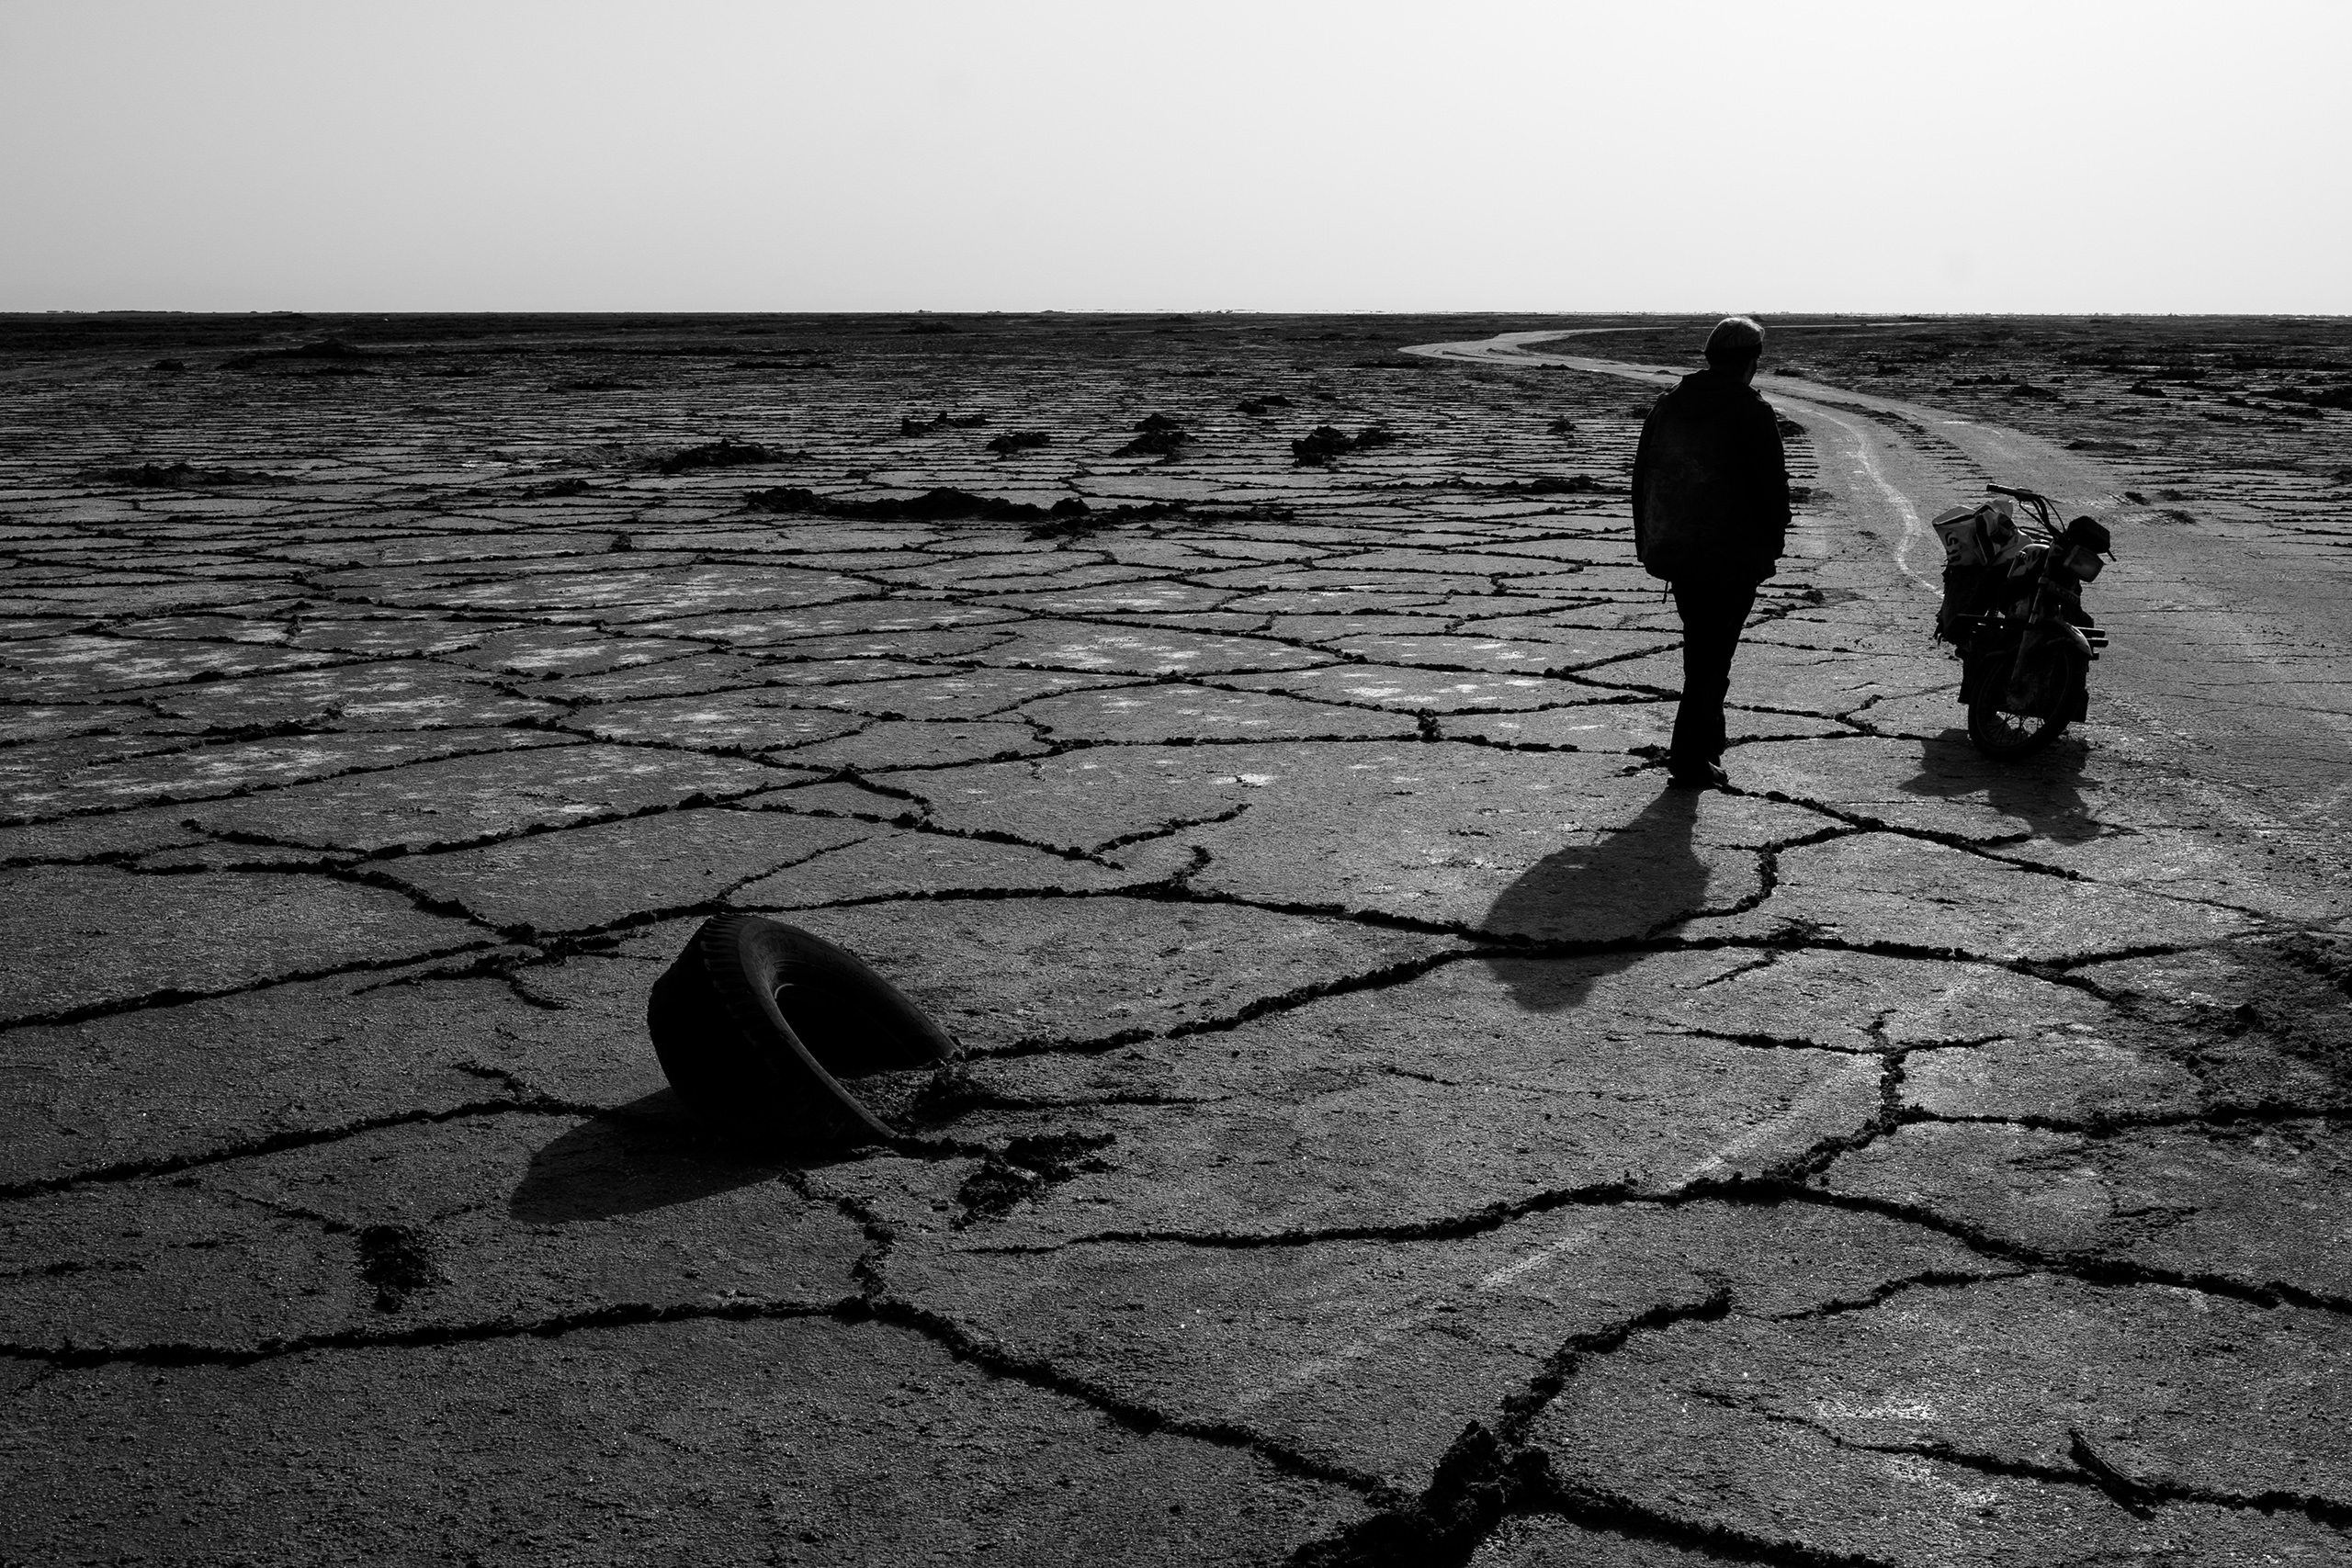 Cracked land of the Gavkhouni salt marsh, the terminal basin of the Zayandeh River in Isfahan Province, Iran. Droughts and water mismanagement have contributed to Iran's water crisis, May 2016.